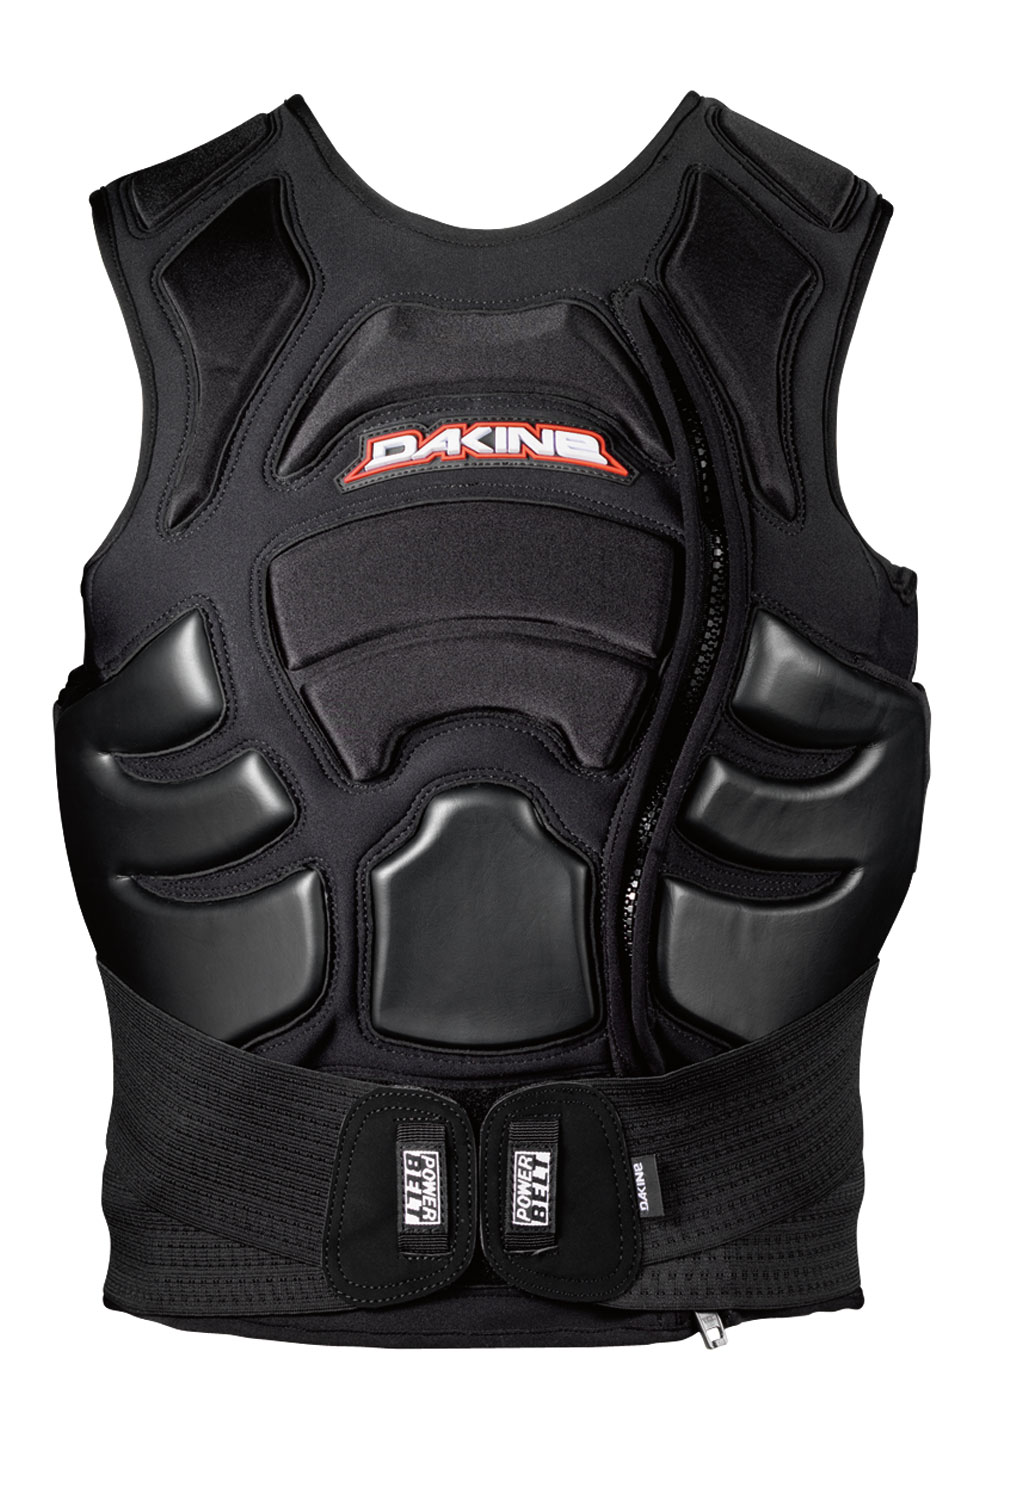 Surf Dakine Matrix Windsurf Vest has a lightweight design that allows you to move freely with the waves and water. It is compatible with both waist and seat harnesses so it's versatile and Dakine added their Power Belt system to keep the vest tight fitting so it doesn't slip and ride up. The dual density armor panels provide impact protection.Key Features of The Dakine Windsurf Matrix Vest: Compression Molded Protection Panels Power Belt System Waist and Seat Harness Compatible Lightweight, Low Profile Design for Maximum Freedom of Movement Zippered Front for Easy On/Off Combination Windsurf or Kite Use Spreader Bar Sold Separately - $110.95